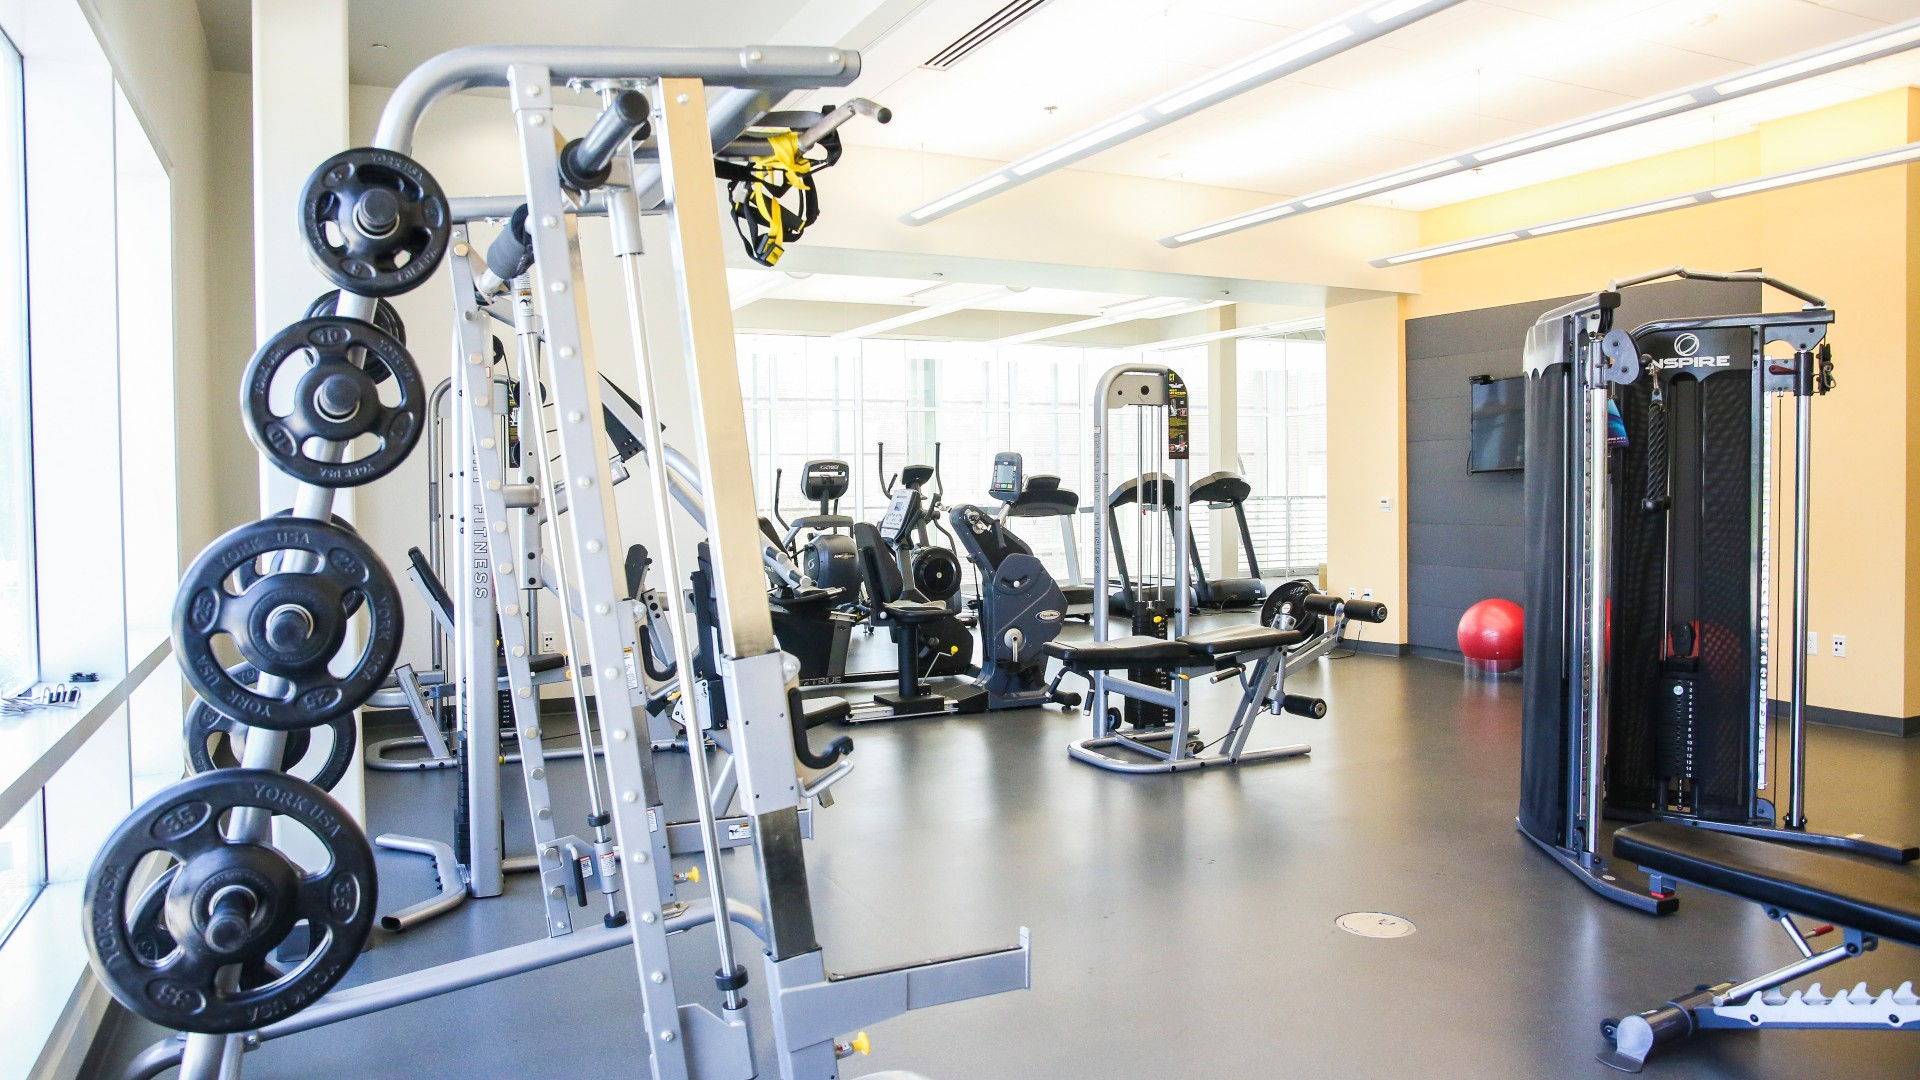 Fitness room at Abbotts Creek Park with multiple machines, cardio equipment and free weights.